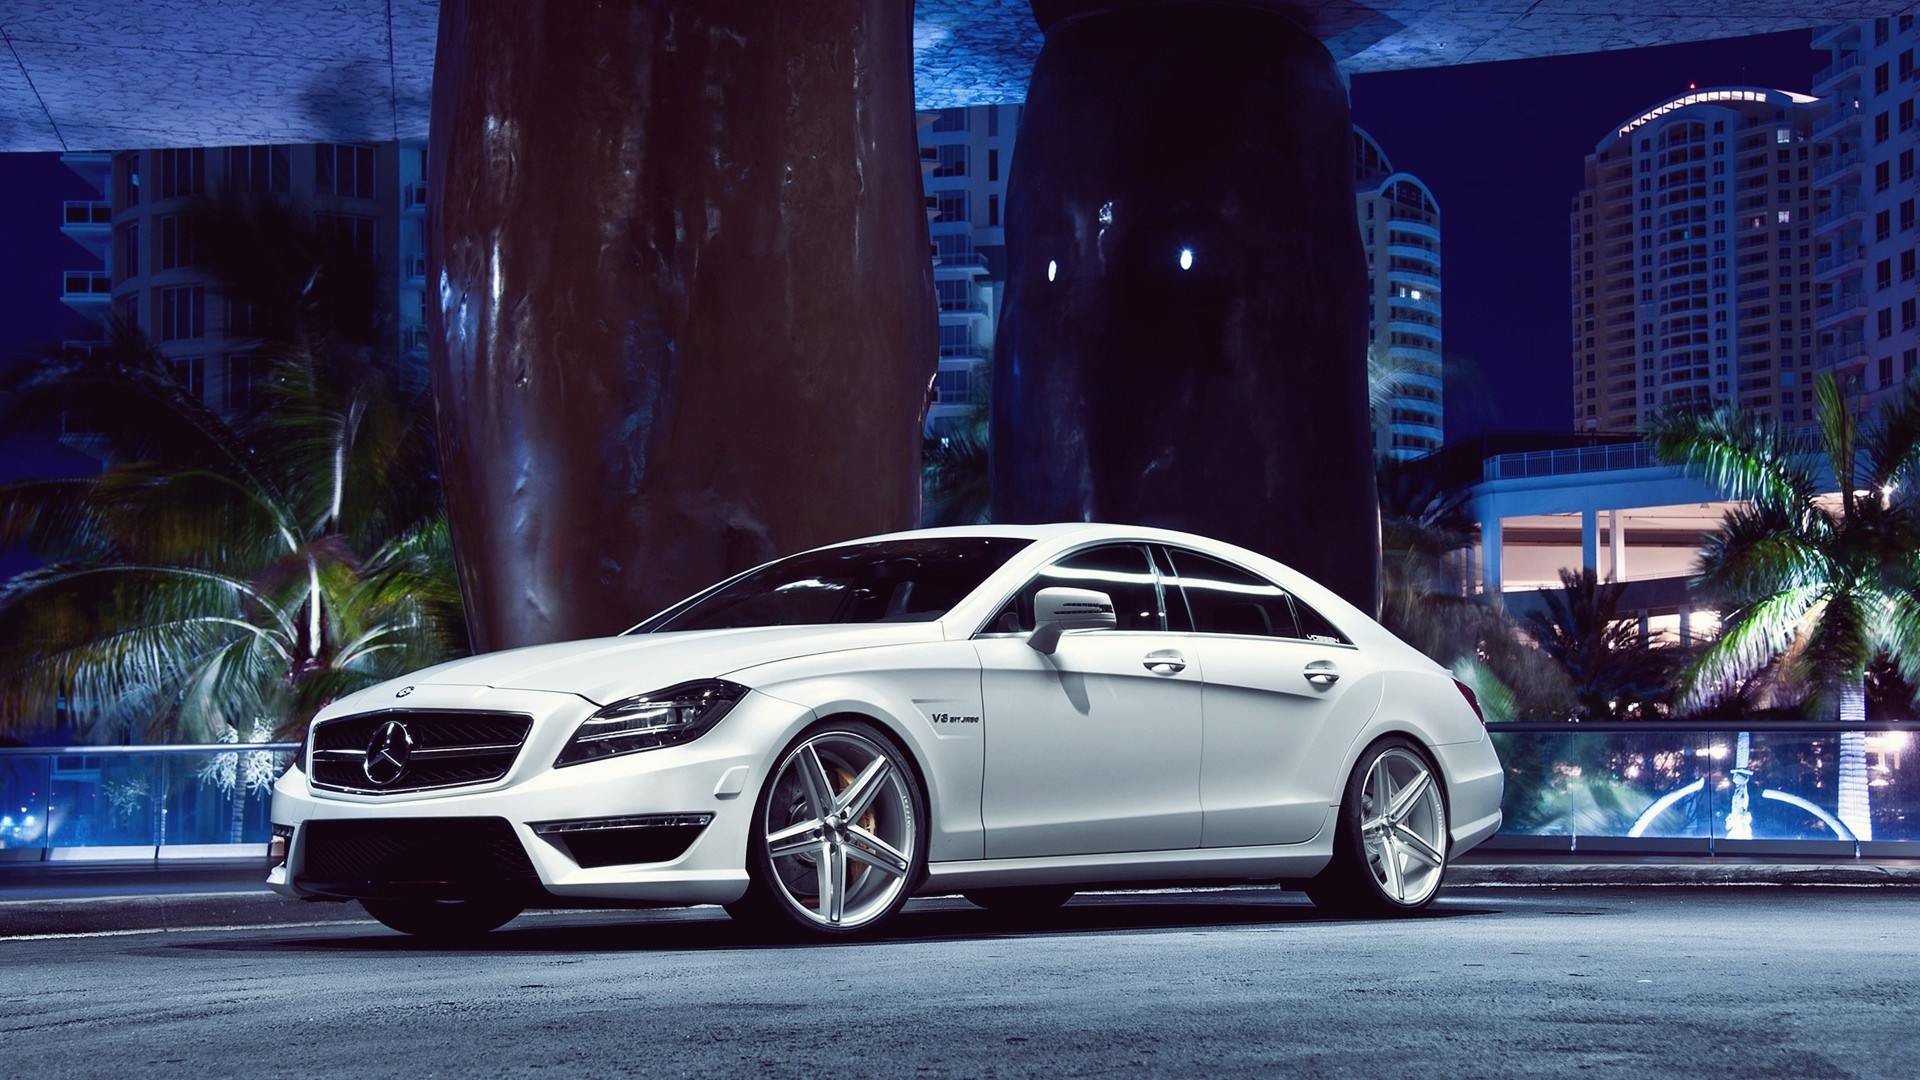 night cars vehicles automotive mercedes benz cls63 amg mercedes benz automobiles mercedes benz cls wallpaper 1920x1080 212828 wallpaperup